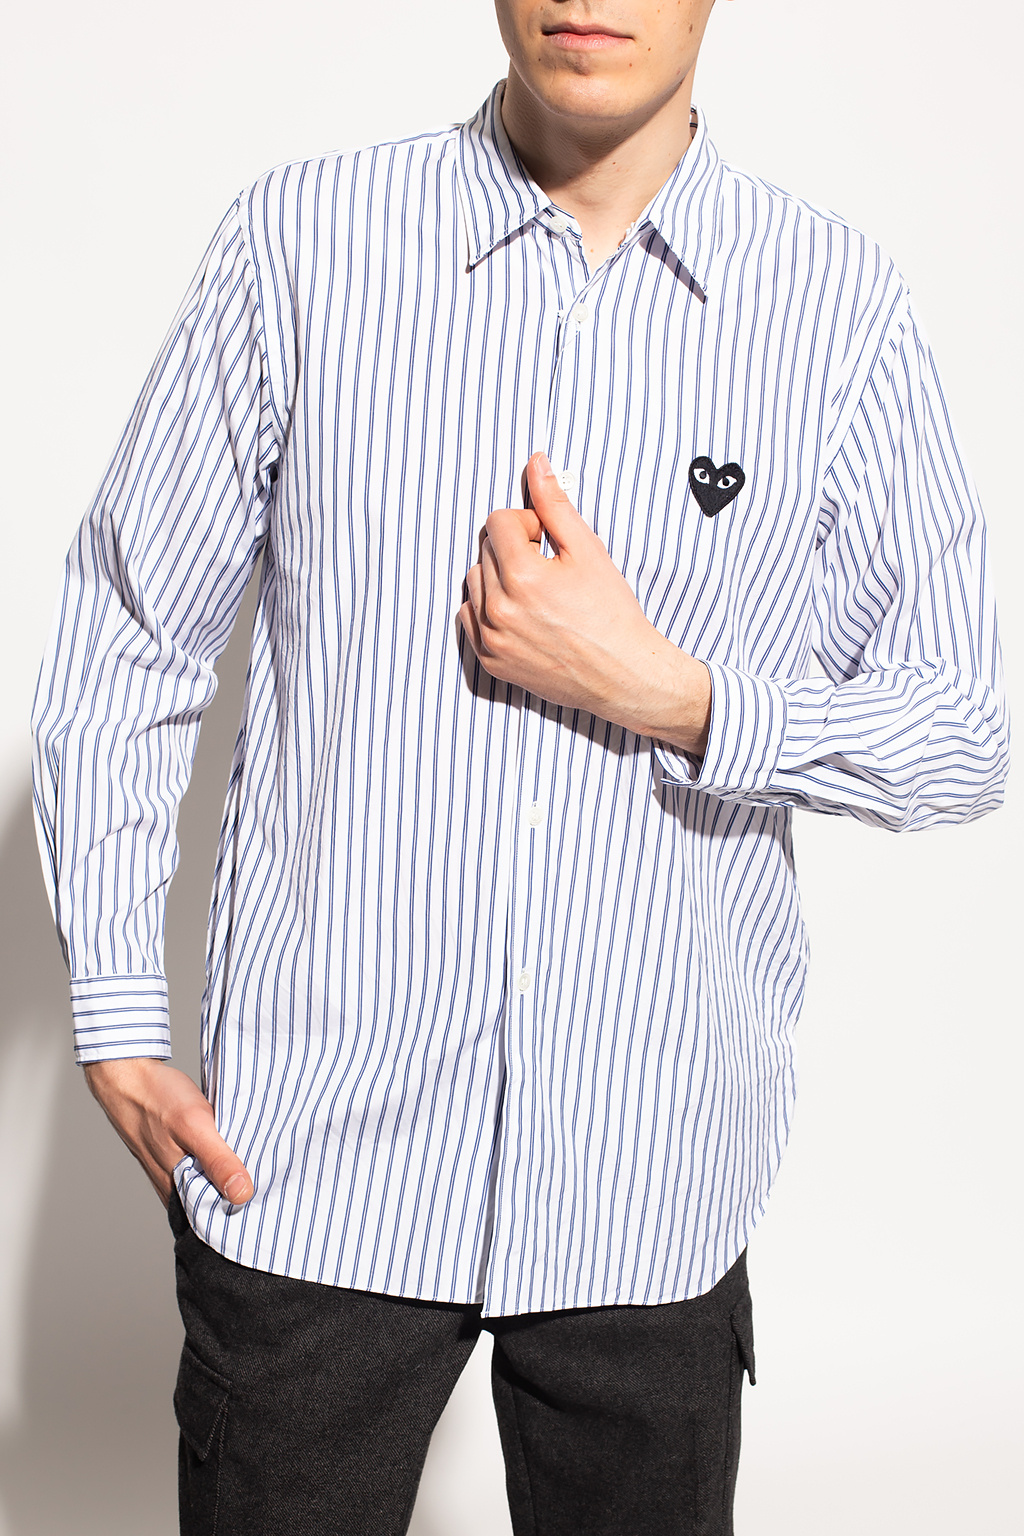 Comme des Garcons Play Shirt with logo